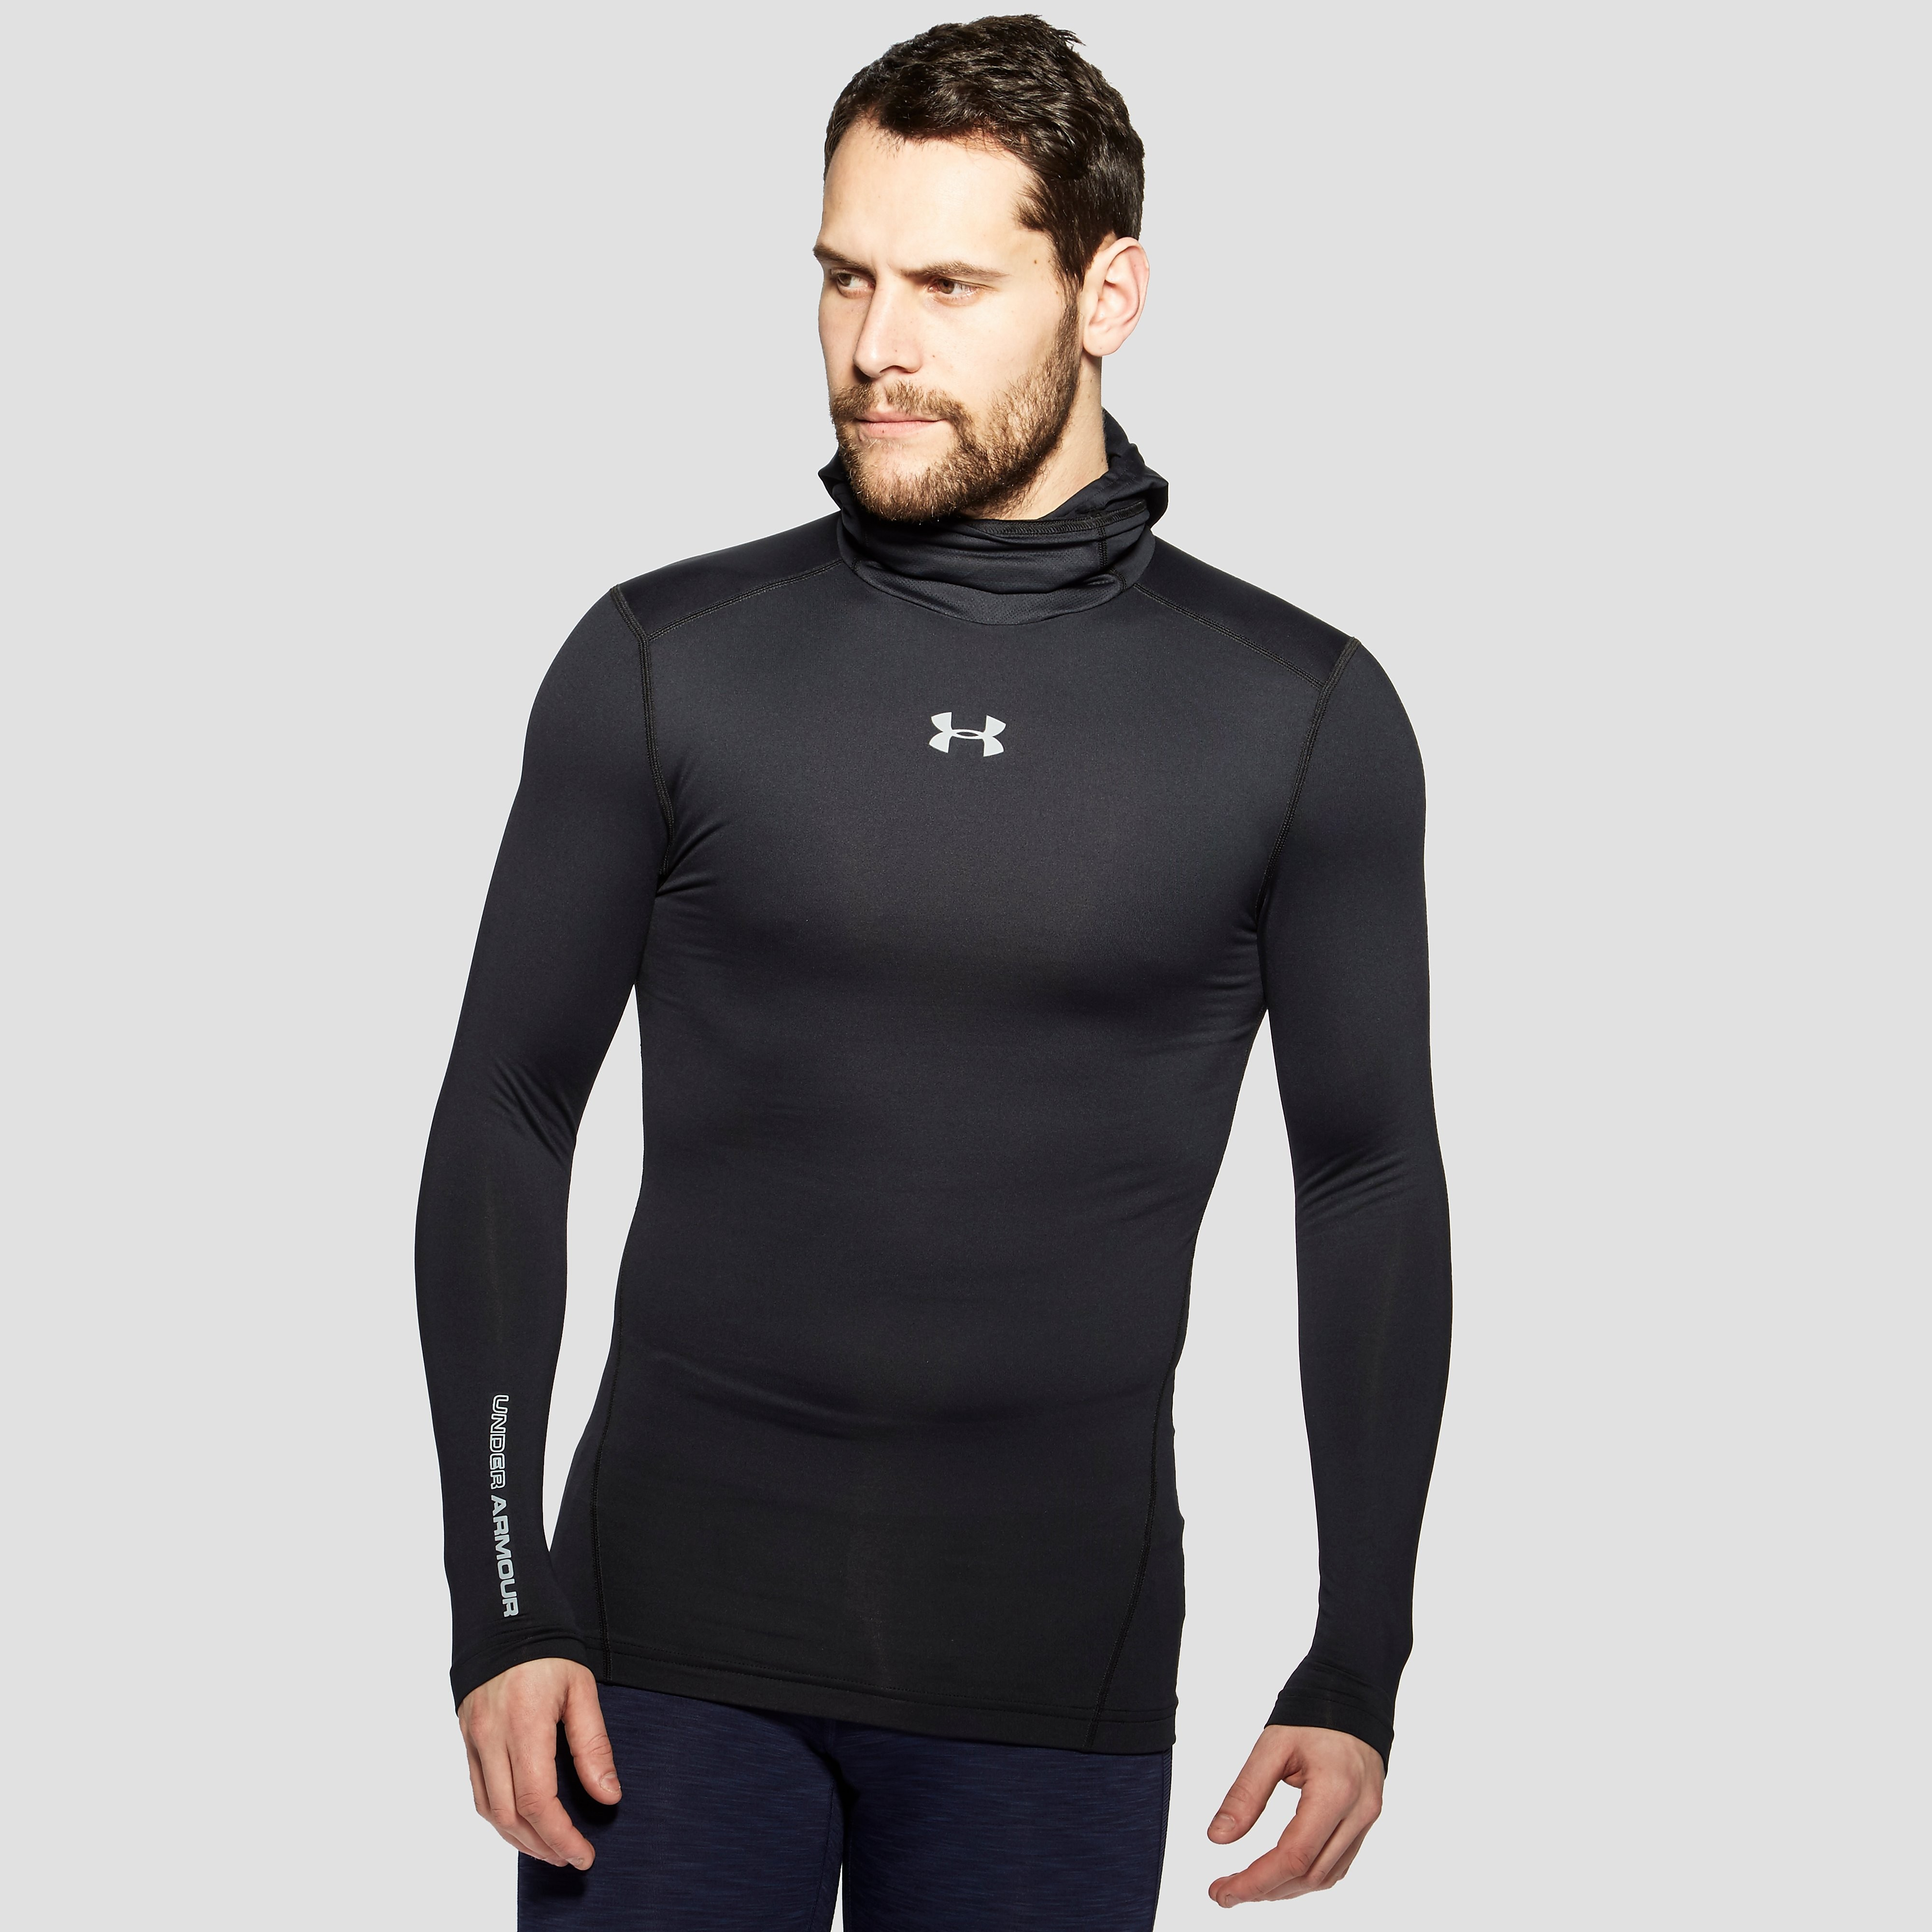 Under Armour ColdGear Armour Compression Long Sleeve Men's Shirt